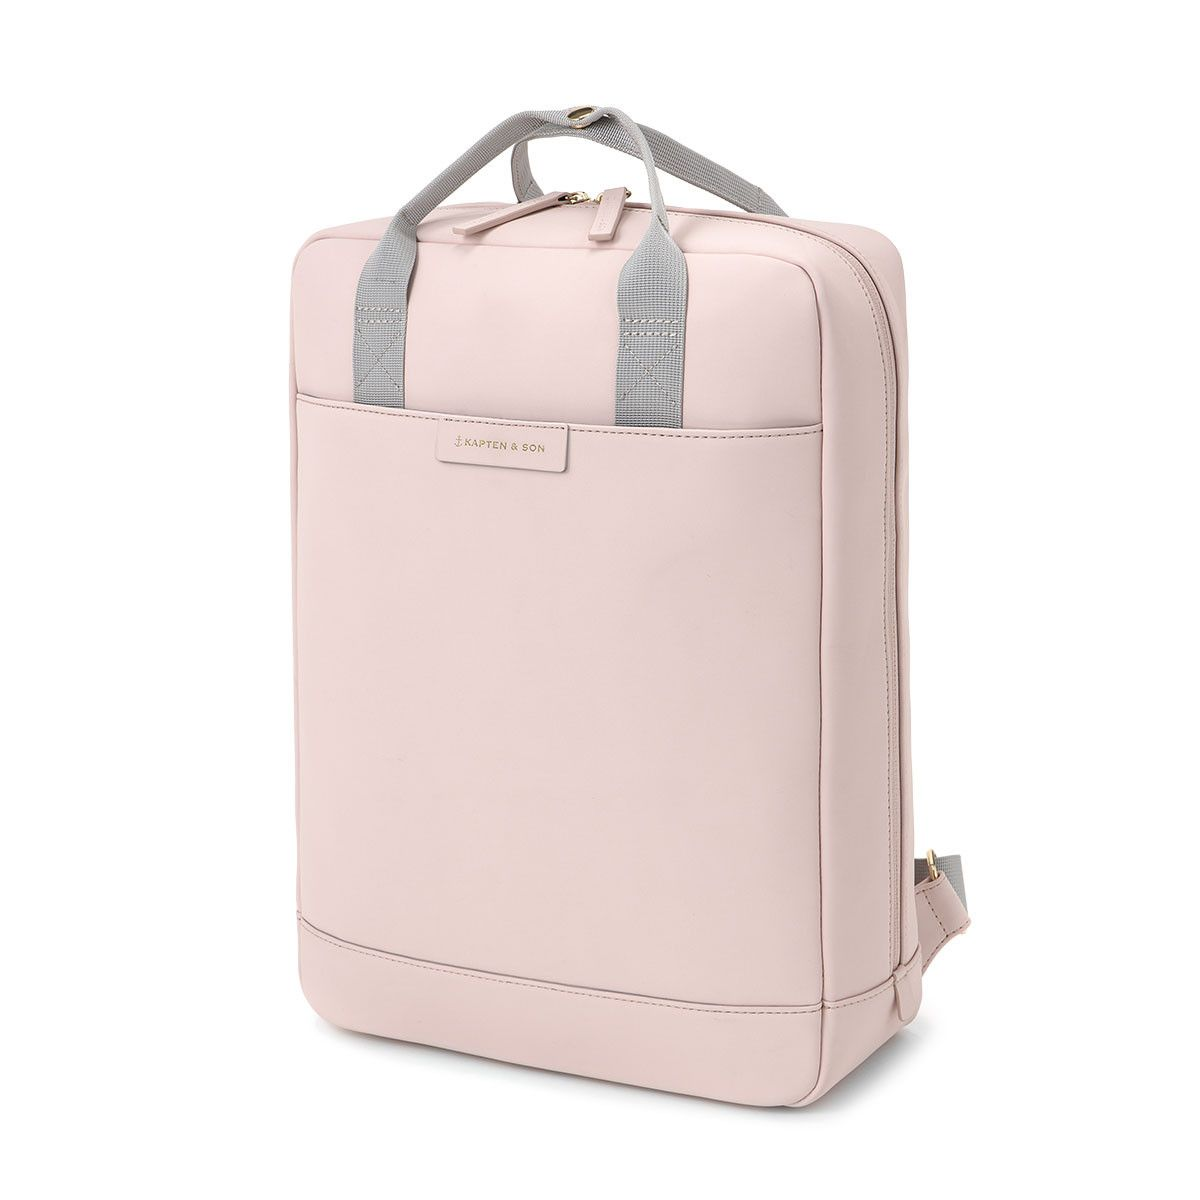 800617e282 Spacious pink backpack with gray handles: waterproof tech-material ✓ two  outer pockets ✓ padded 13 inch laptop pocket ✓ Buy now!